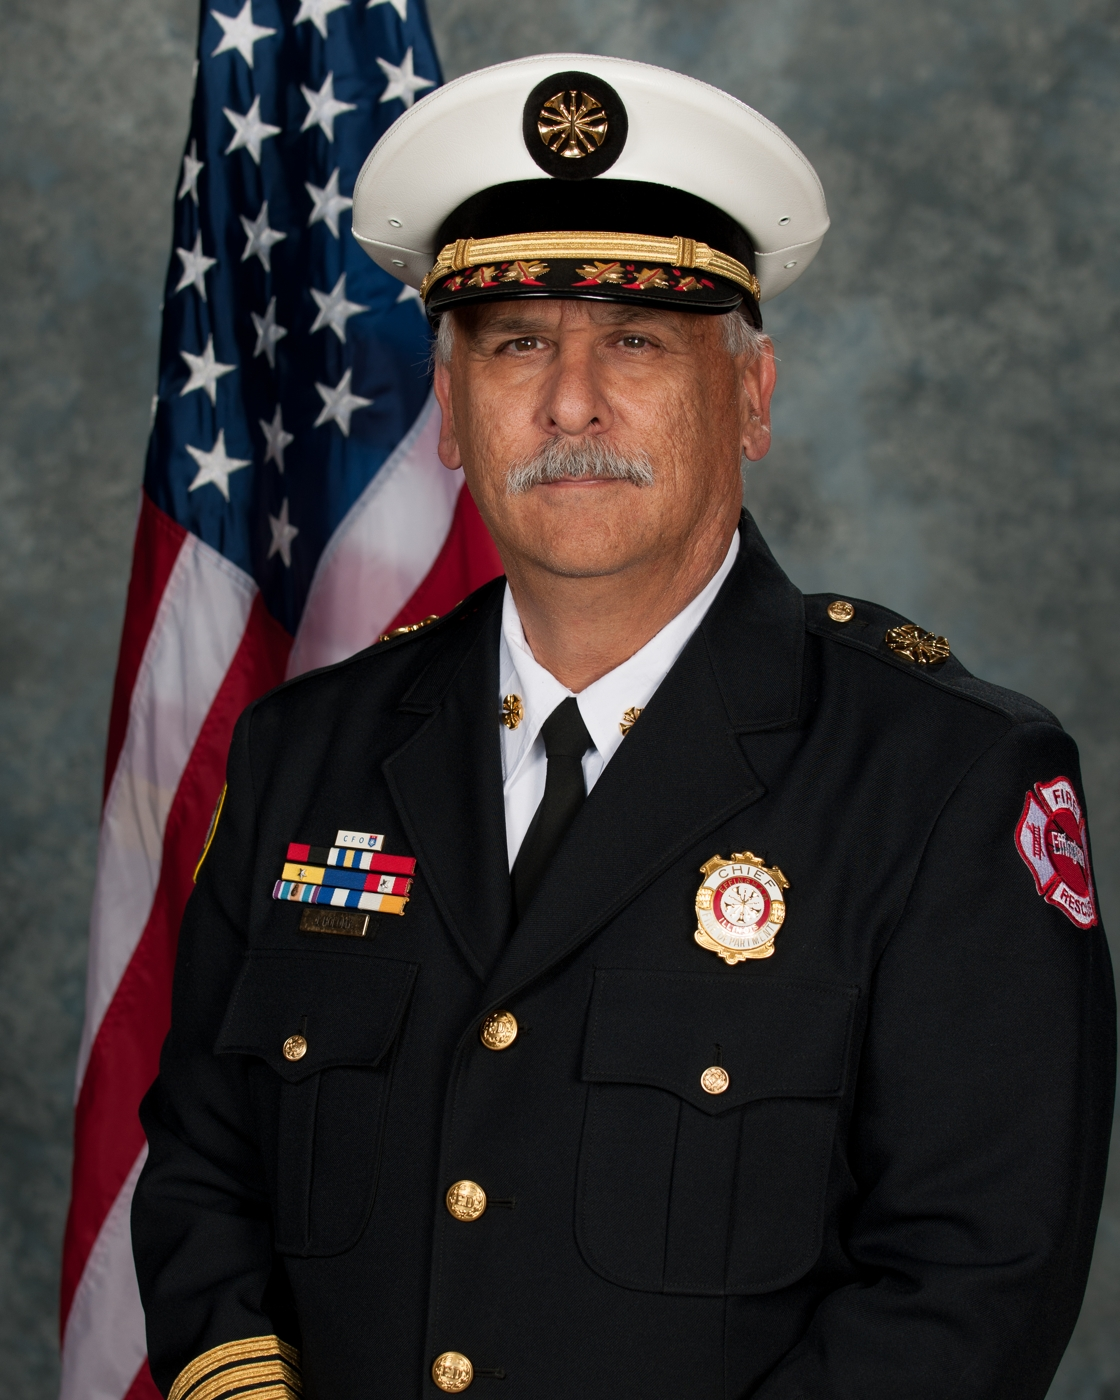 Effingham Fire Chief Holomy Appointed Chairman of Illinois Fire Advisory Commission